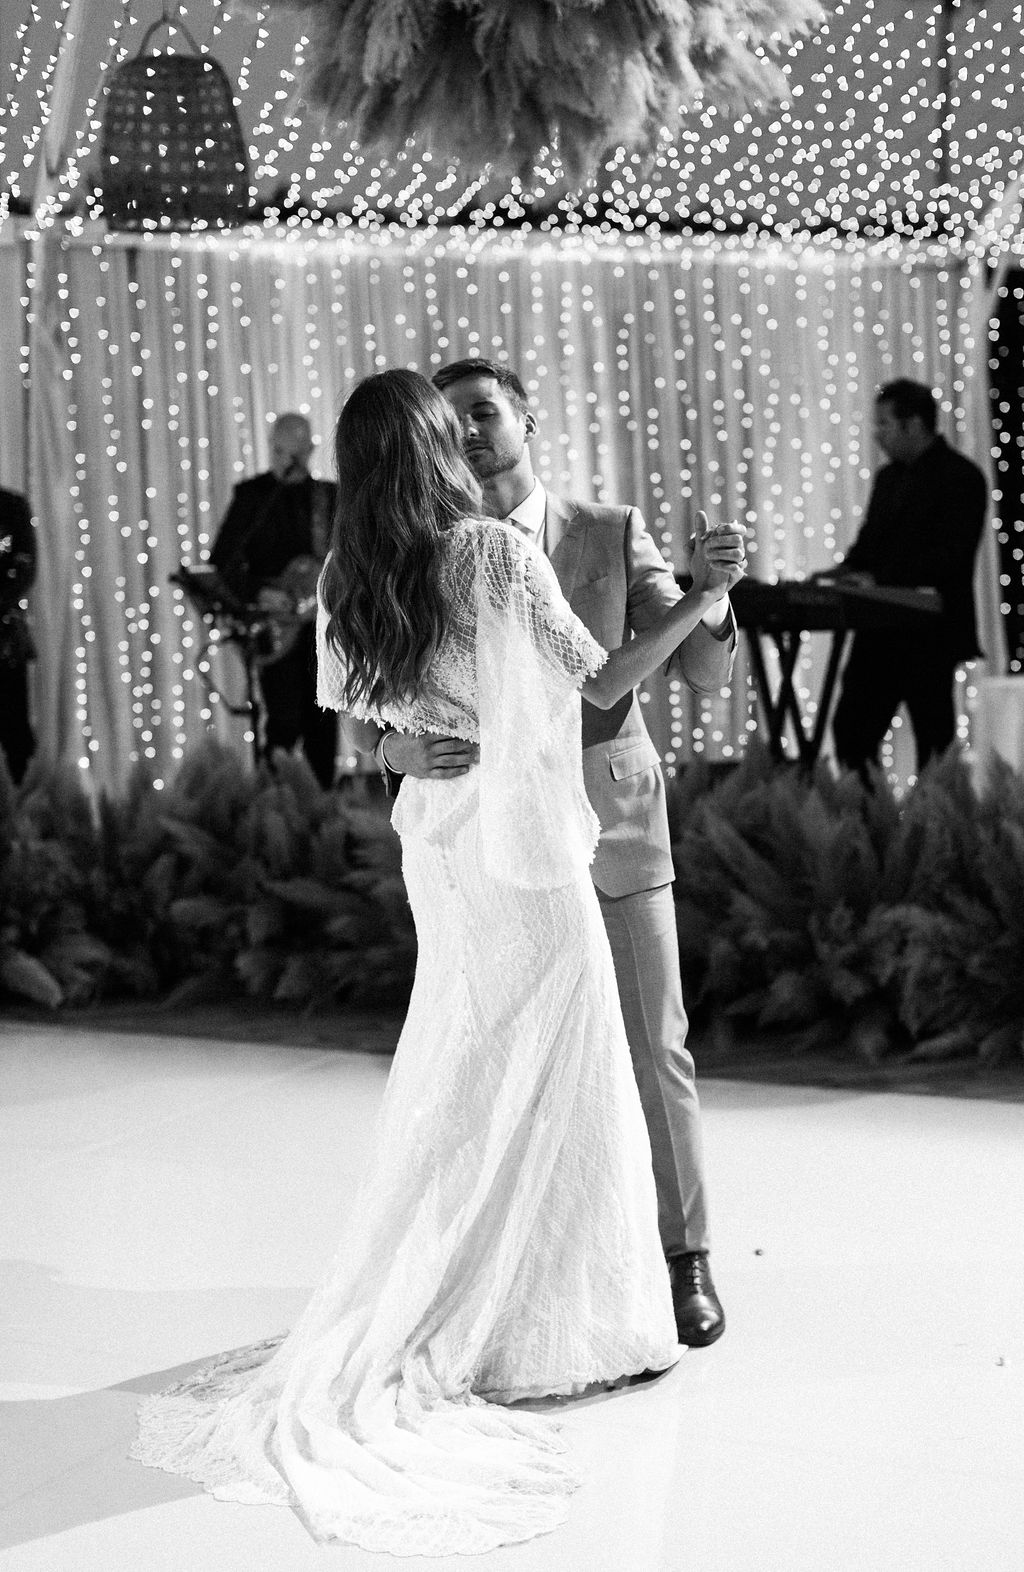 bride and groom sharing first dance with twinkling light backdrop